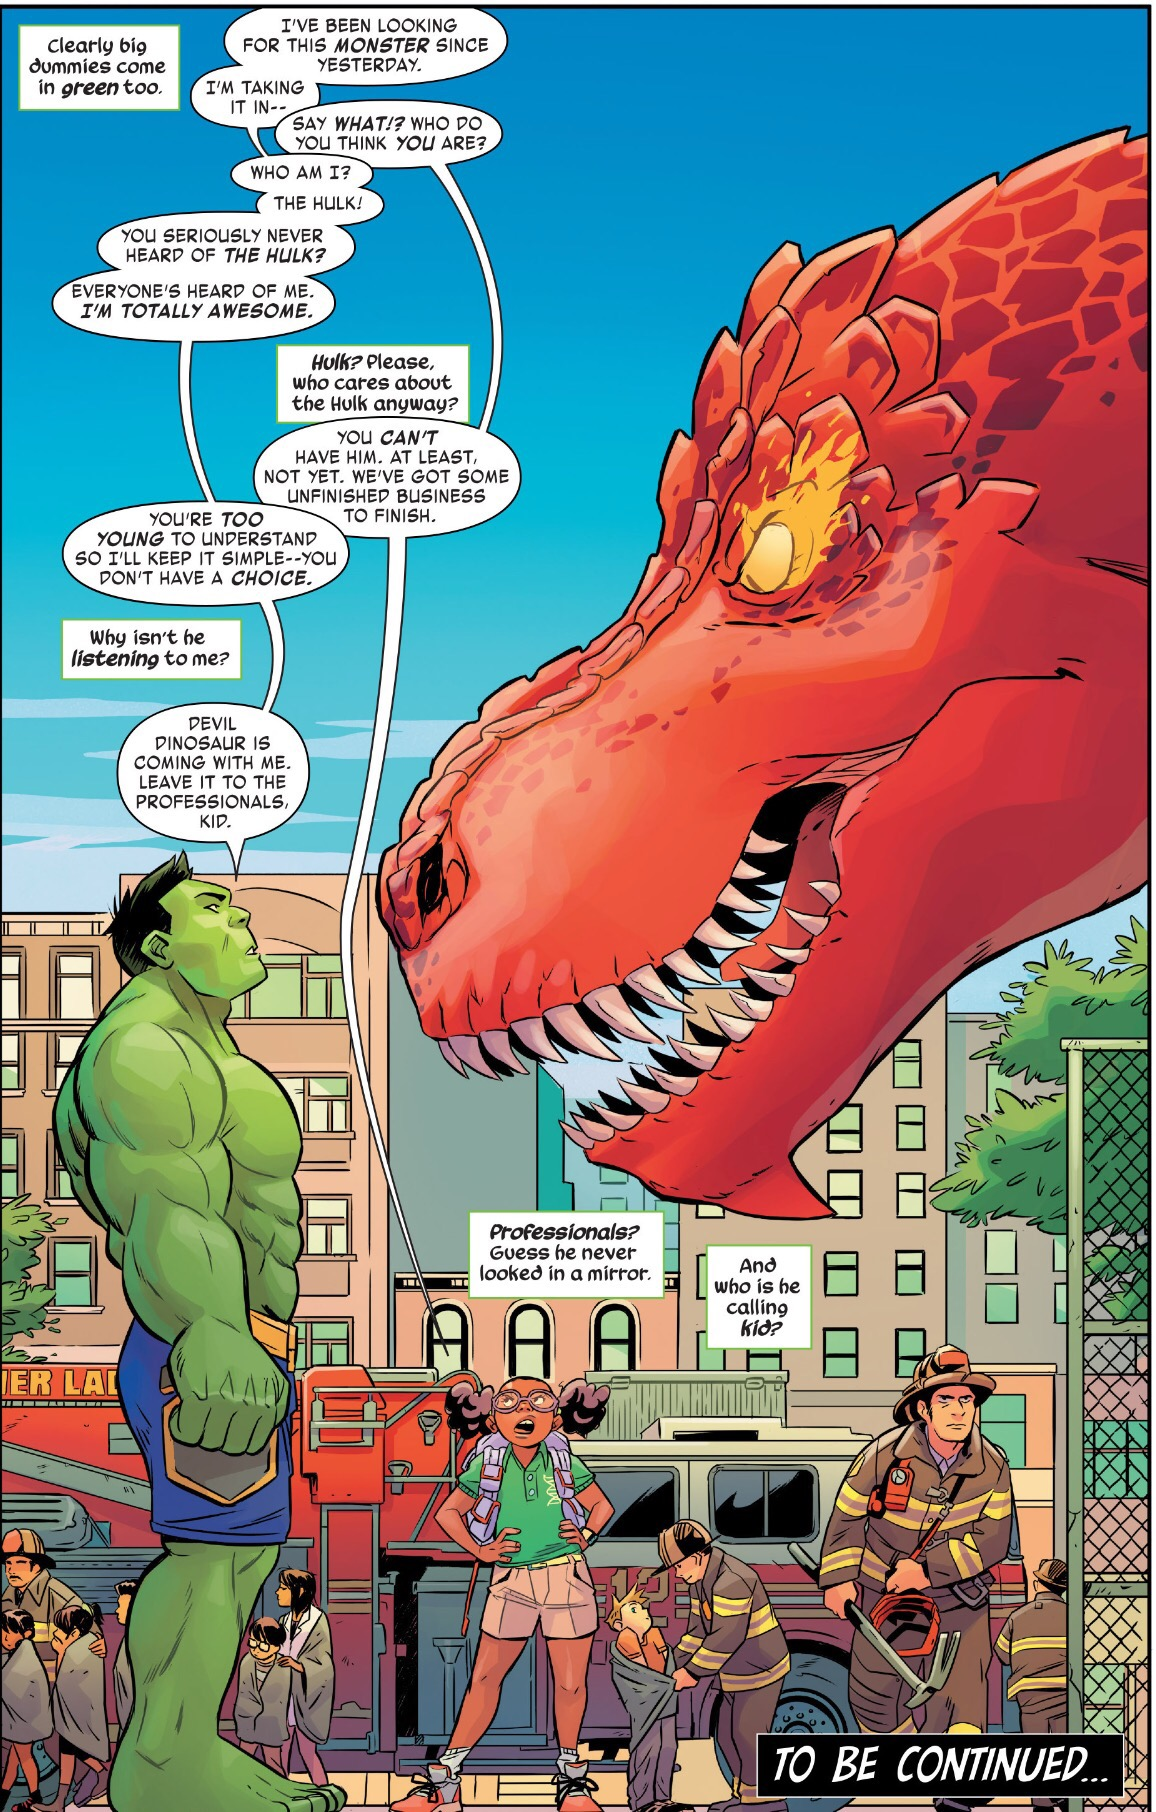 Moon Girl and Devil Dinosaur meet the Hulk